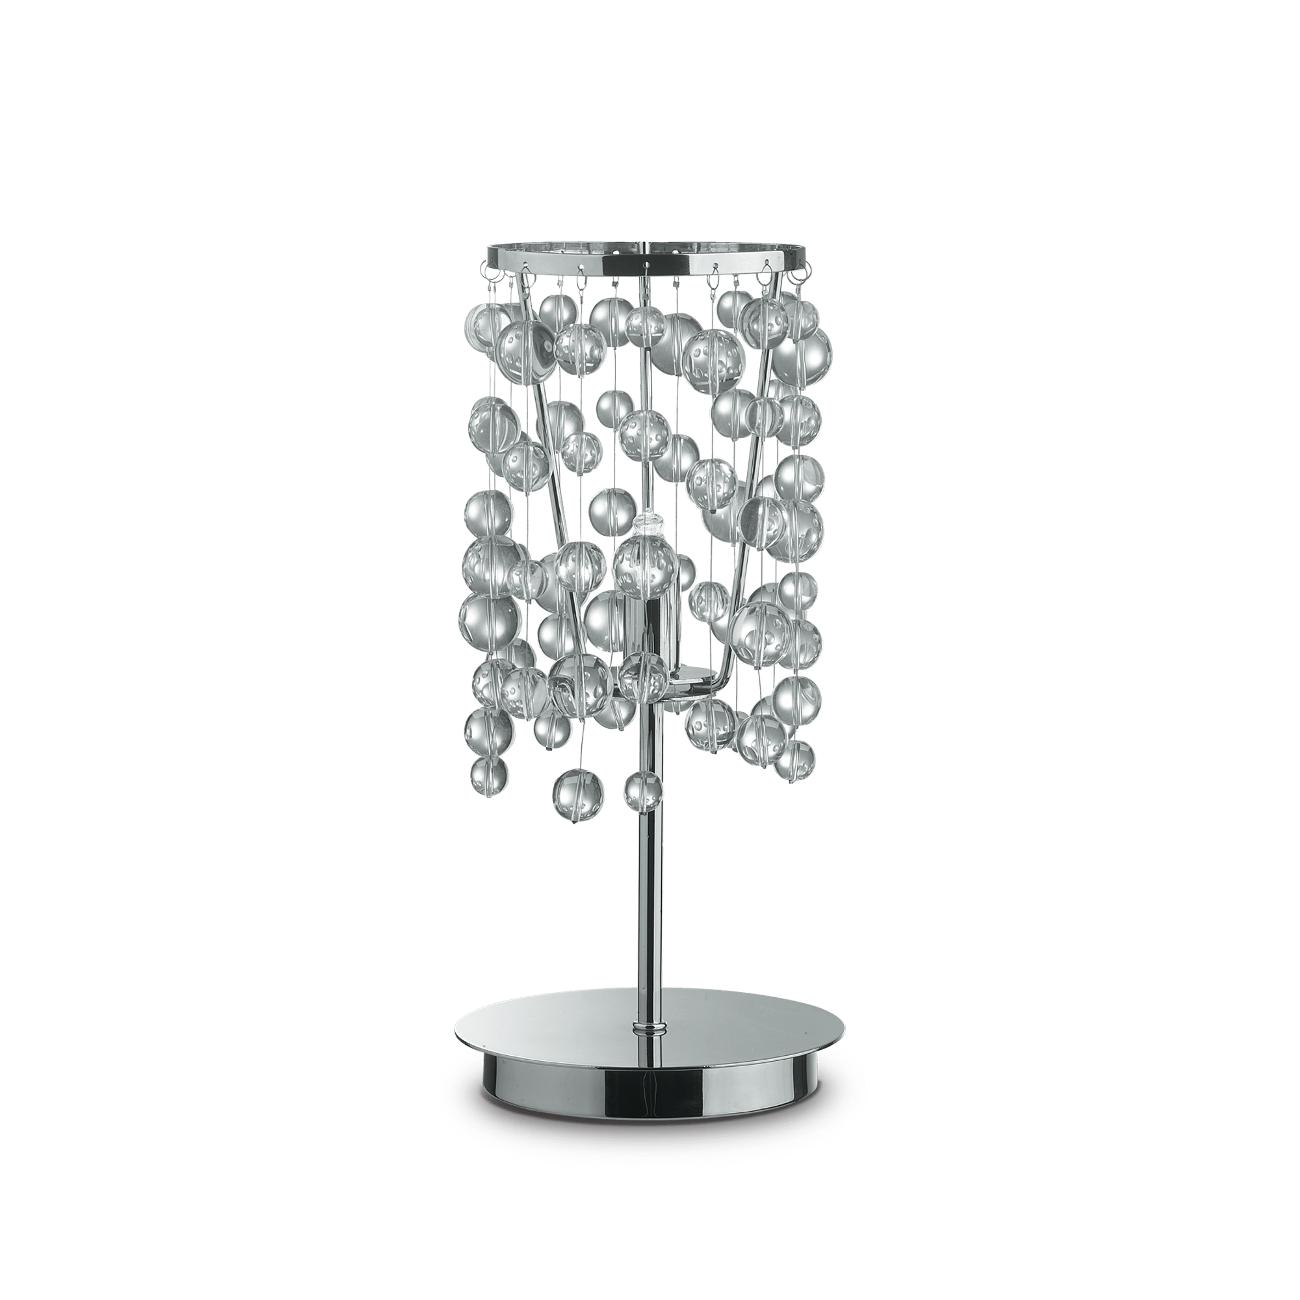 Stolní lampa Ideal LUX Neve TL1 Cromo